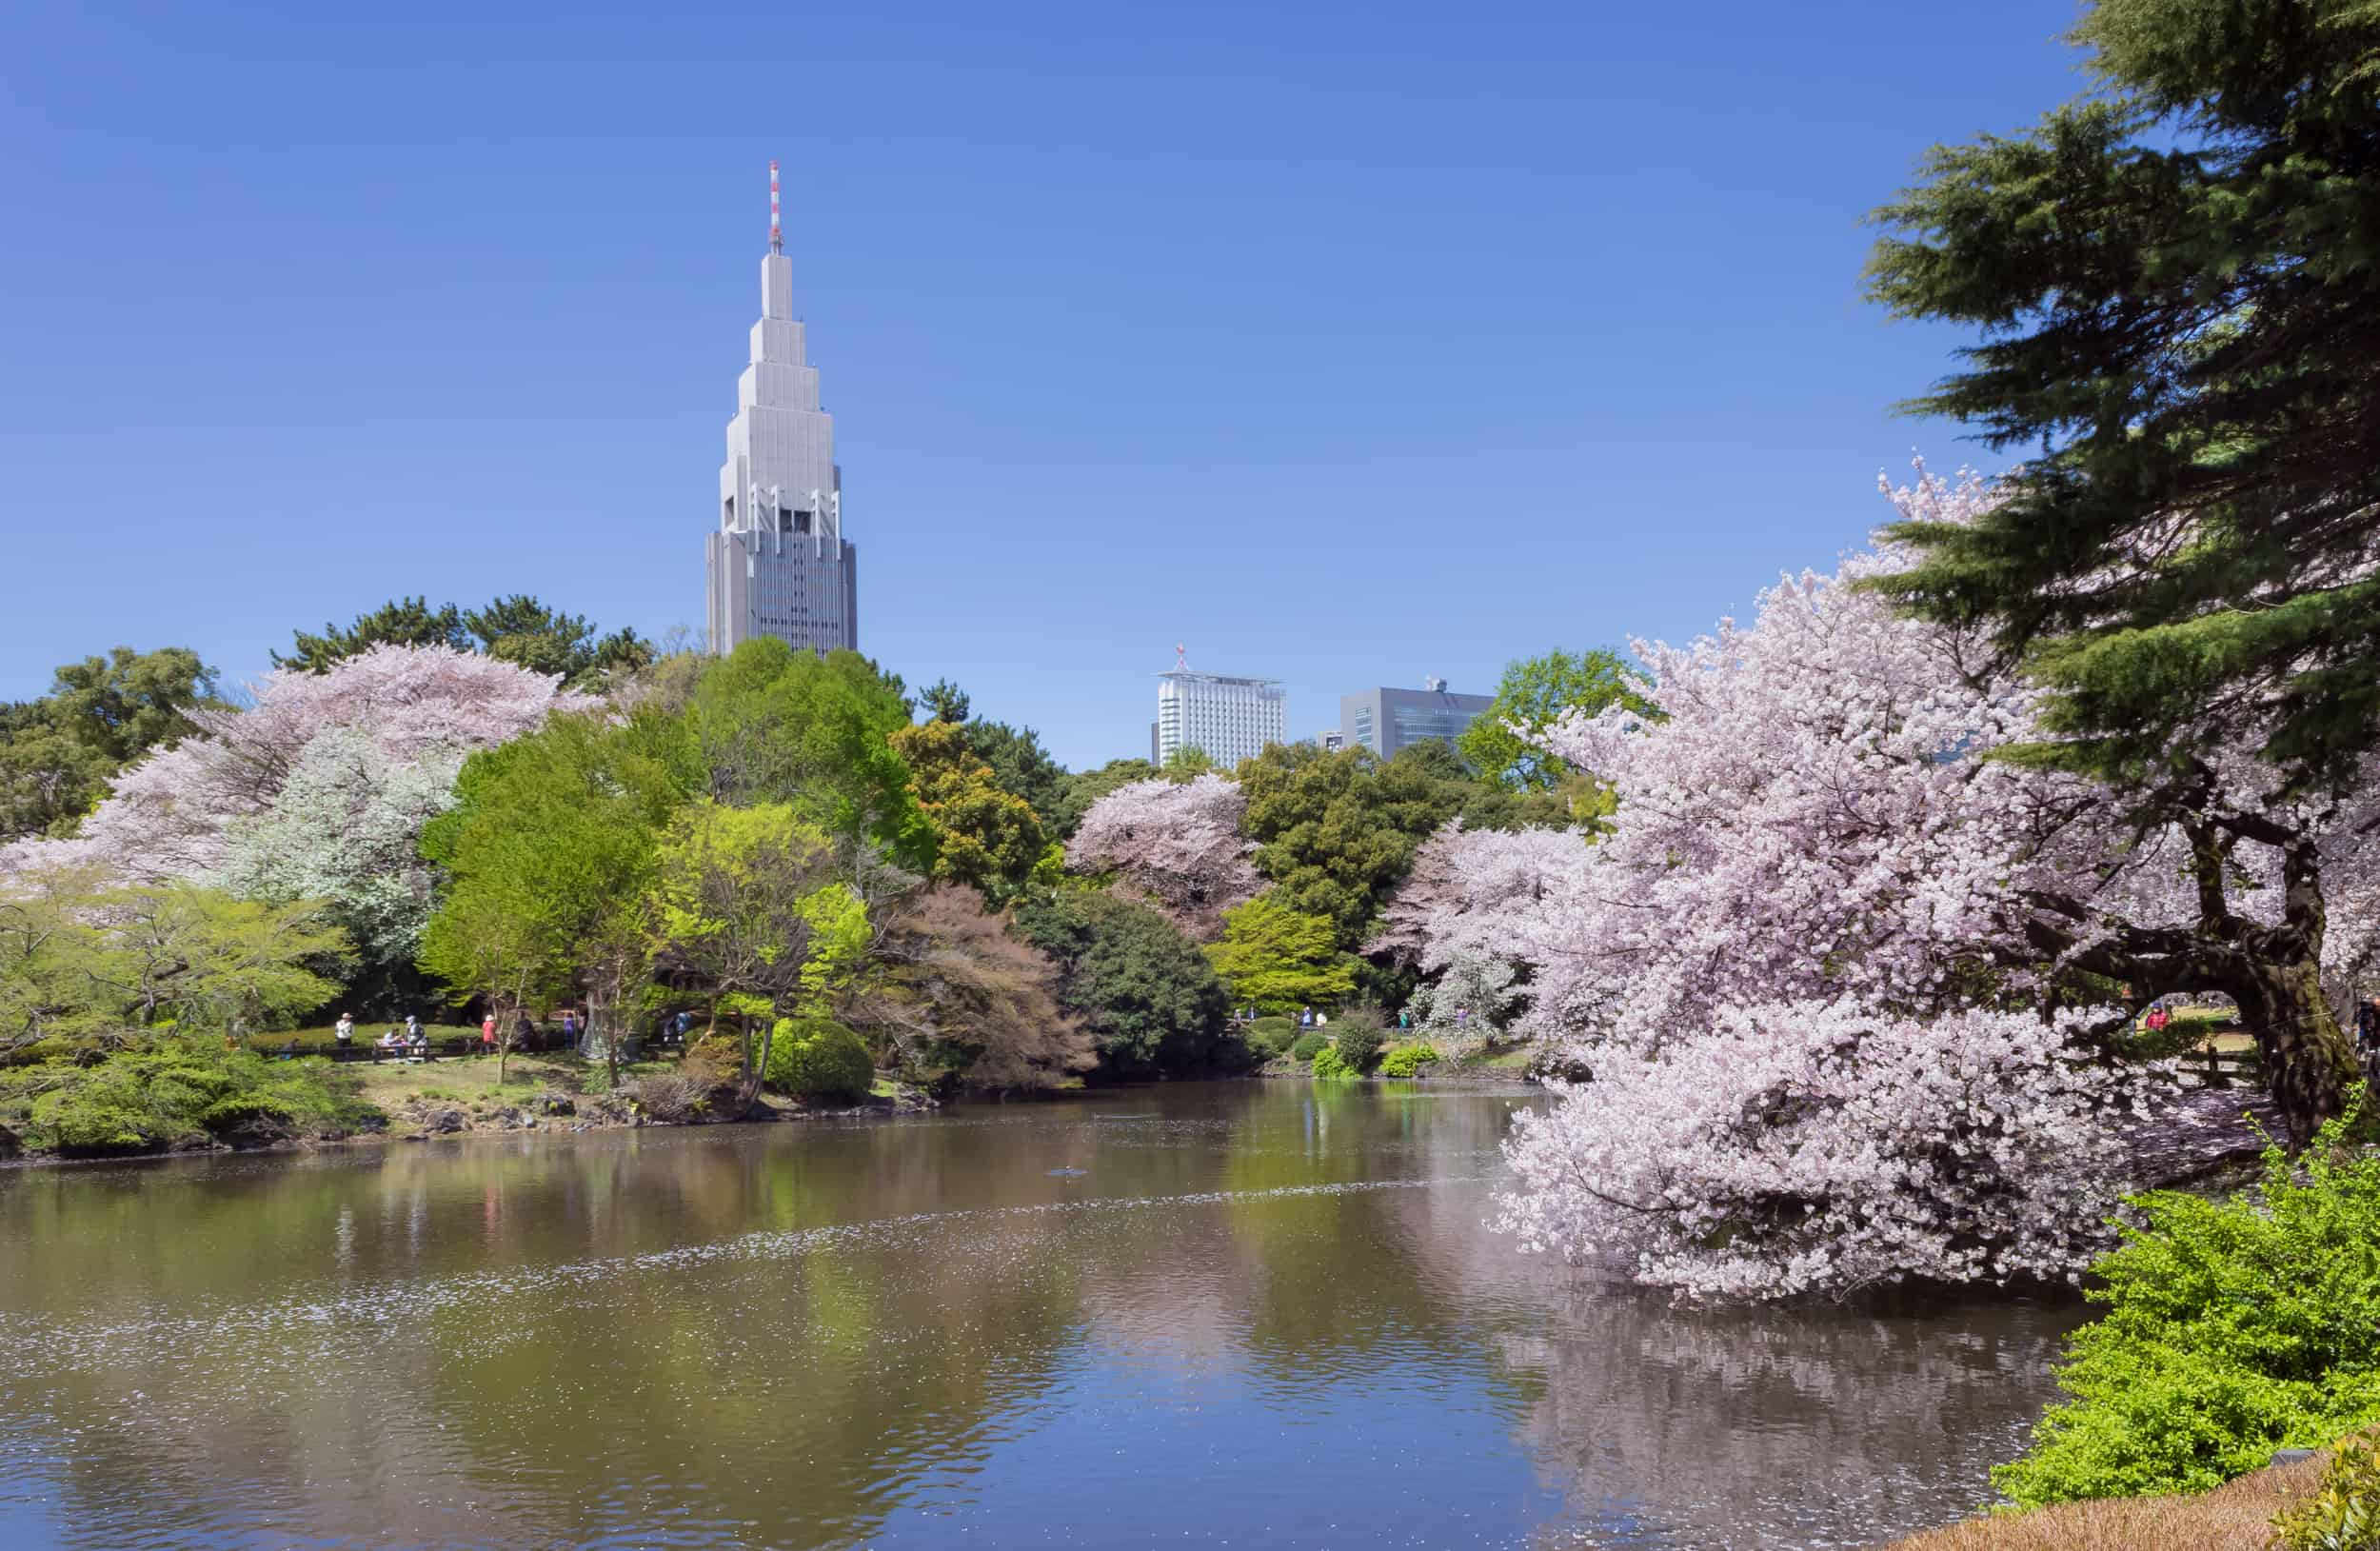 visit the Shinjuku Gyoen National Garden